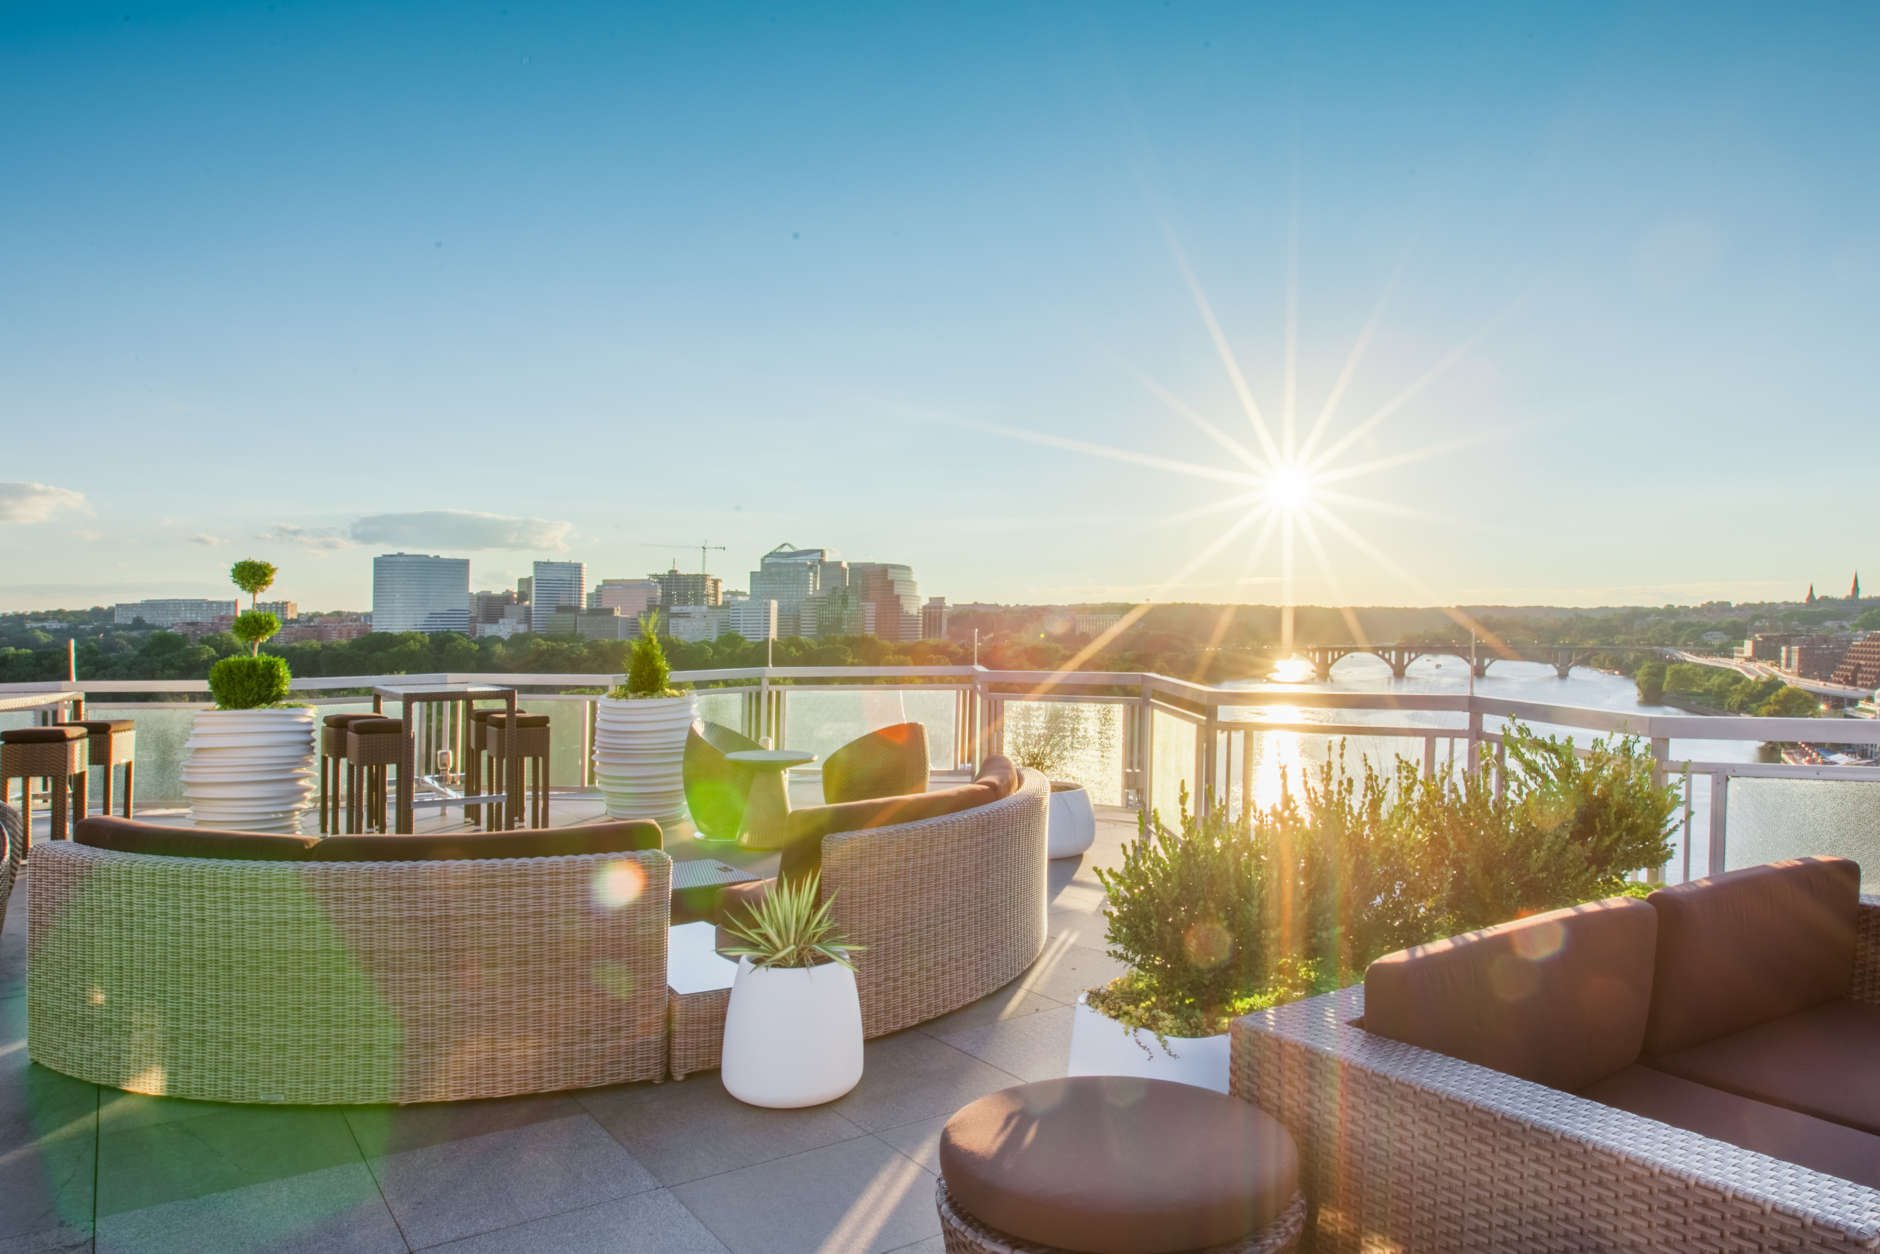 The rooftop bar at The Watergate Hotel is undoubtably one of the nicest places to enjoy the weather — and libations — in the D.C. area. (Courtesy David Preta)